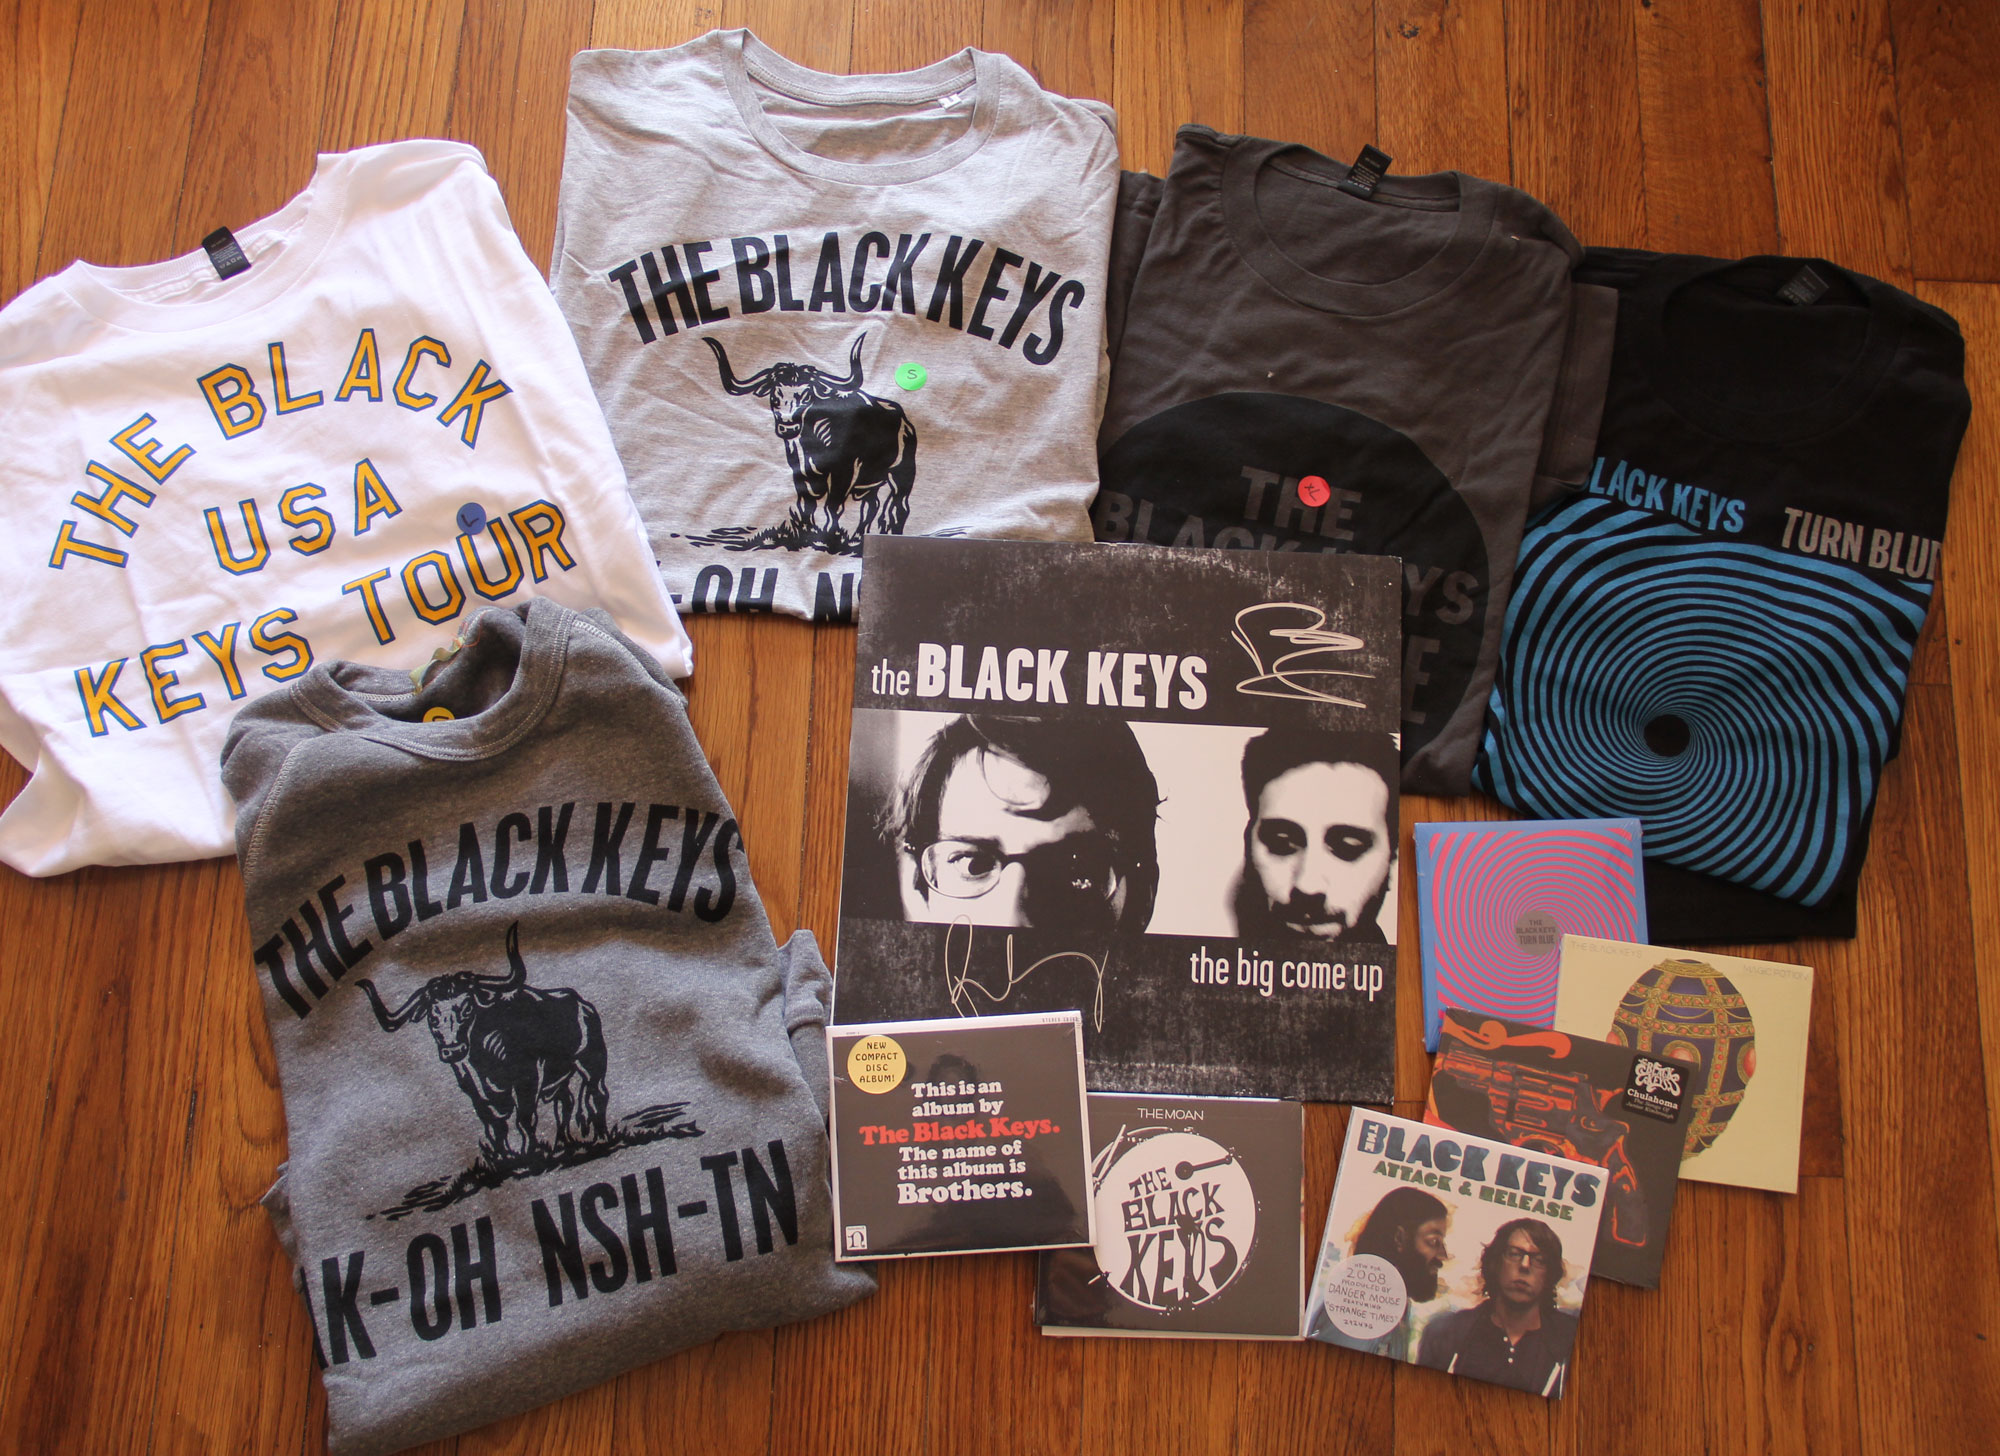 Black keys t shirt uk - The Black Keys Discography And Mega Merch Bundle